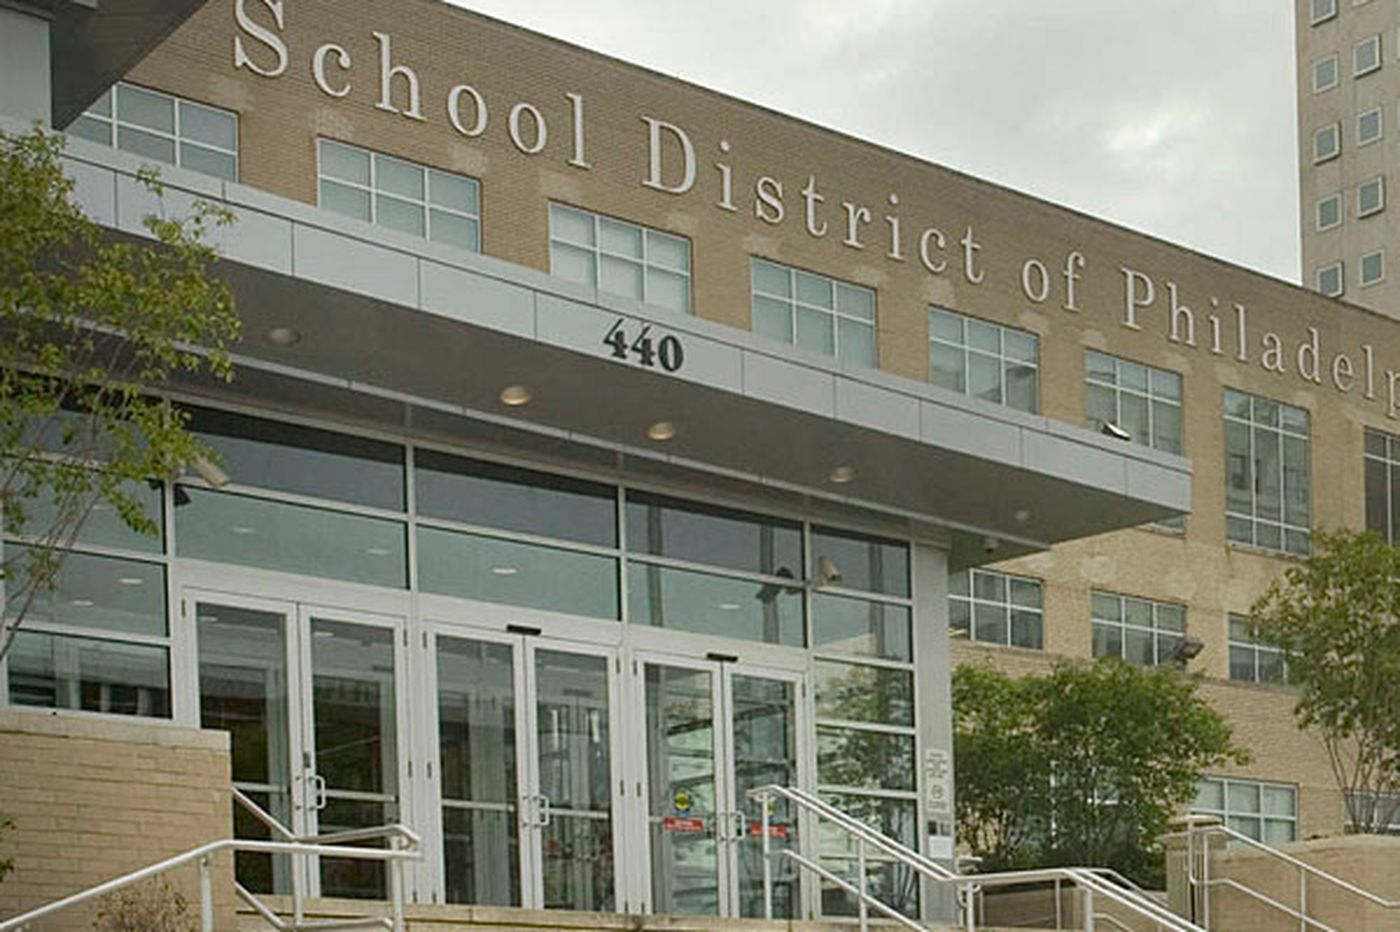 Pension costs continue to burden Philly School District, report says